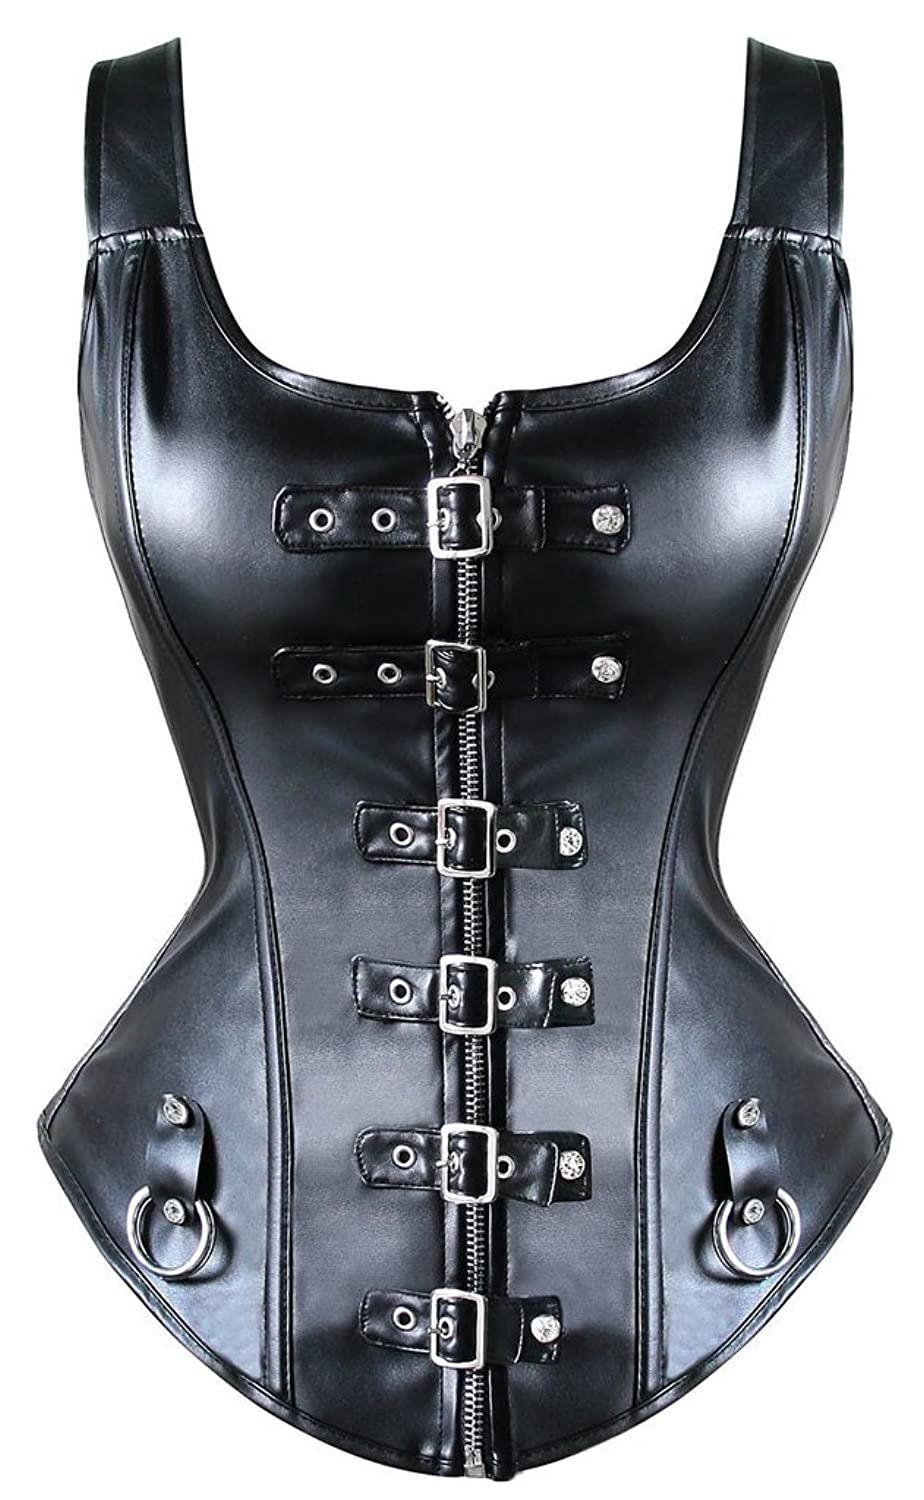 Steampunk Punk Rock Faux Leather Buckle-up Corset Bustier Basque Top